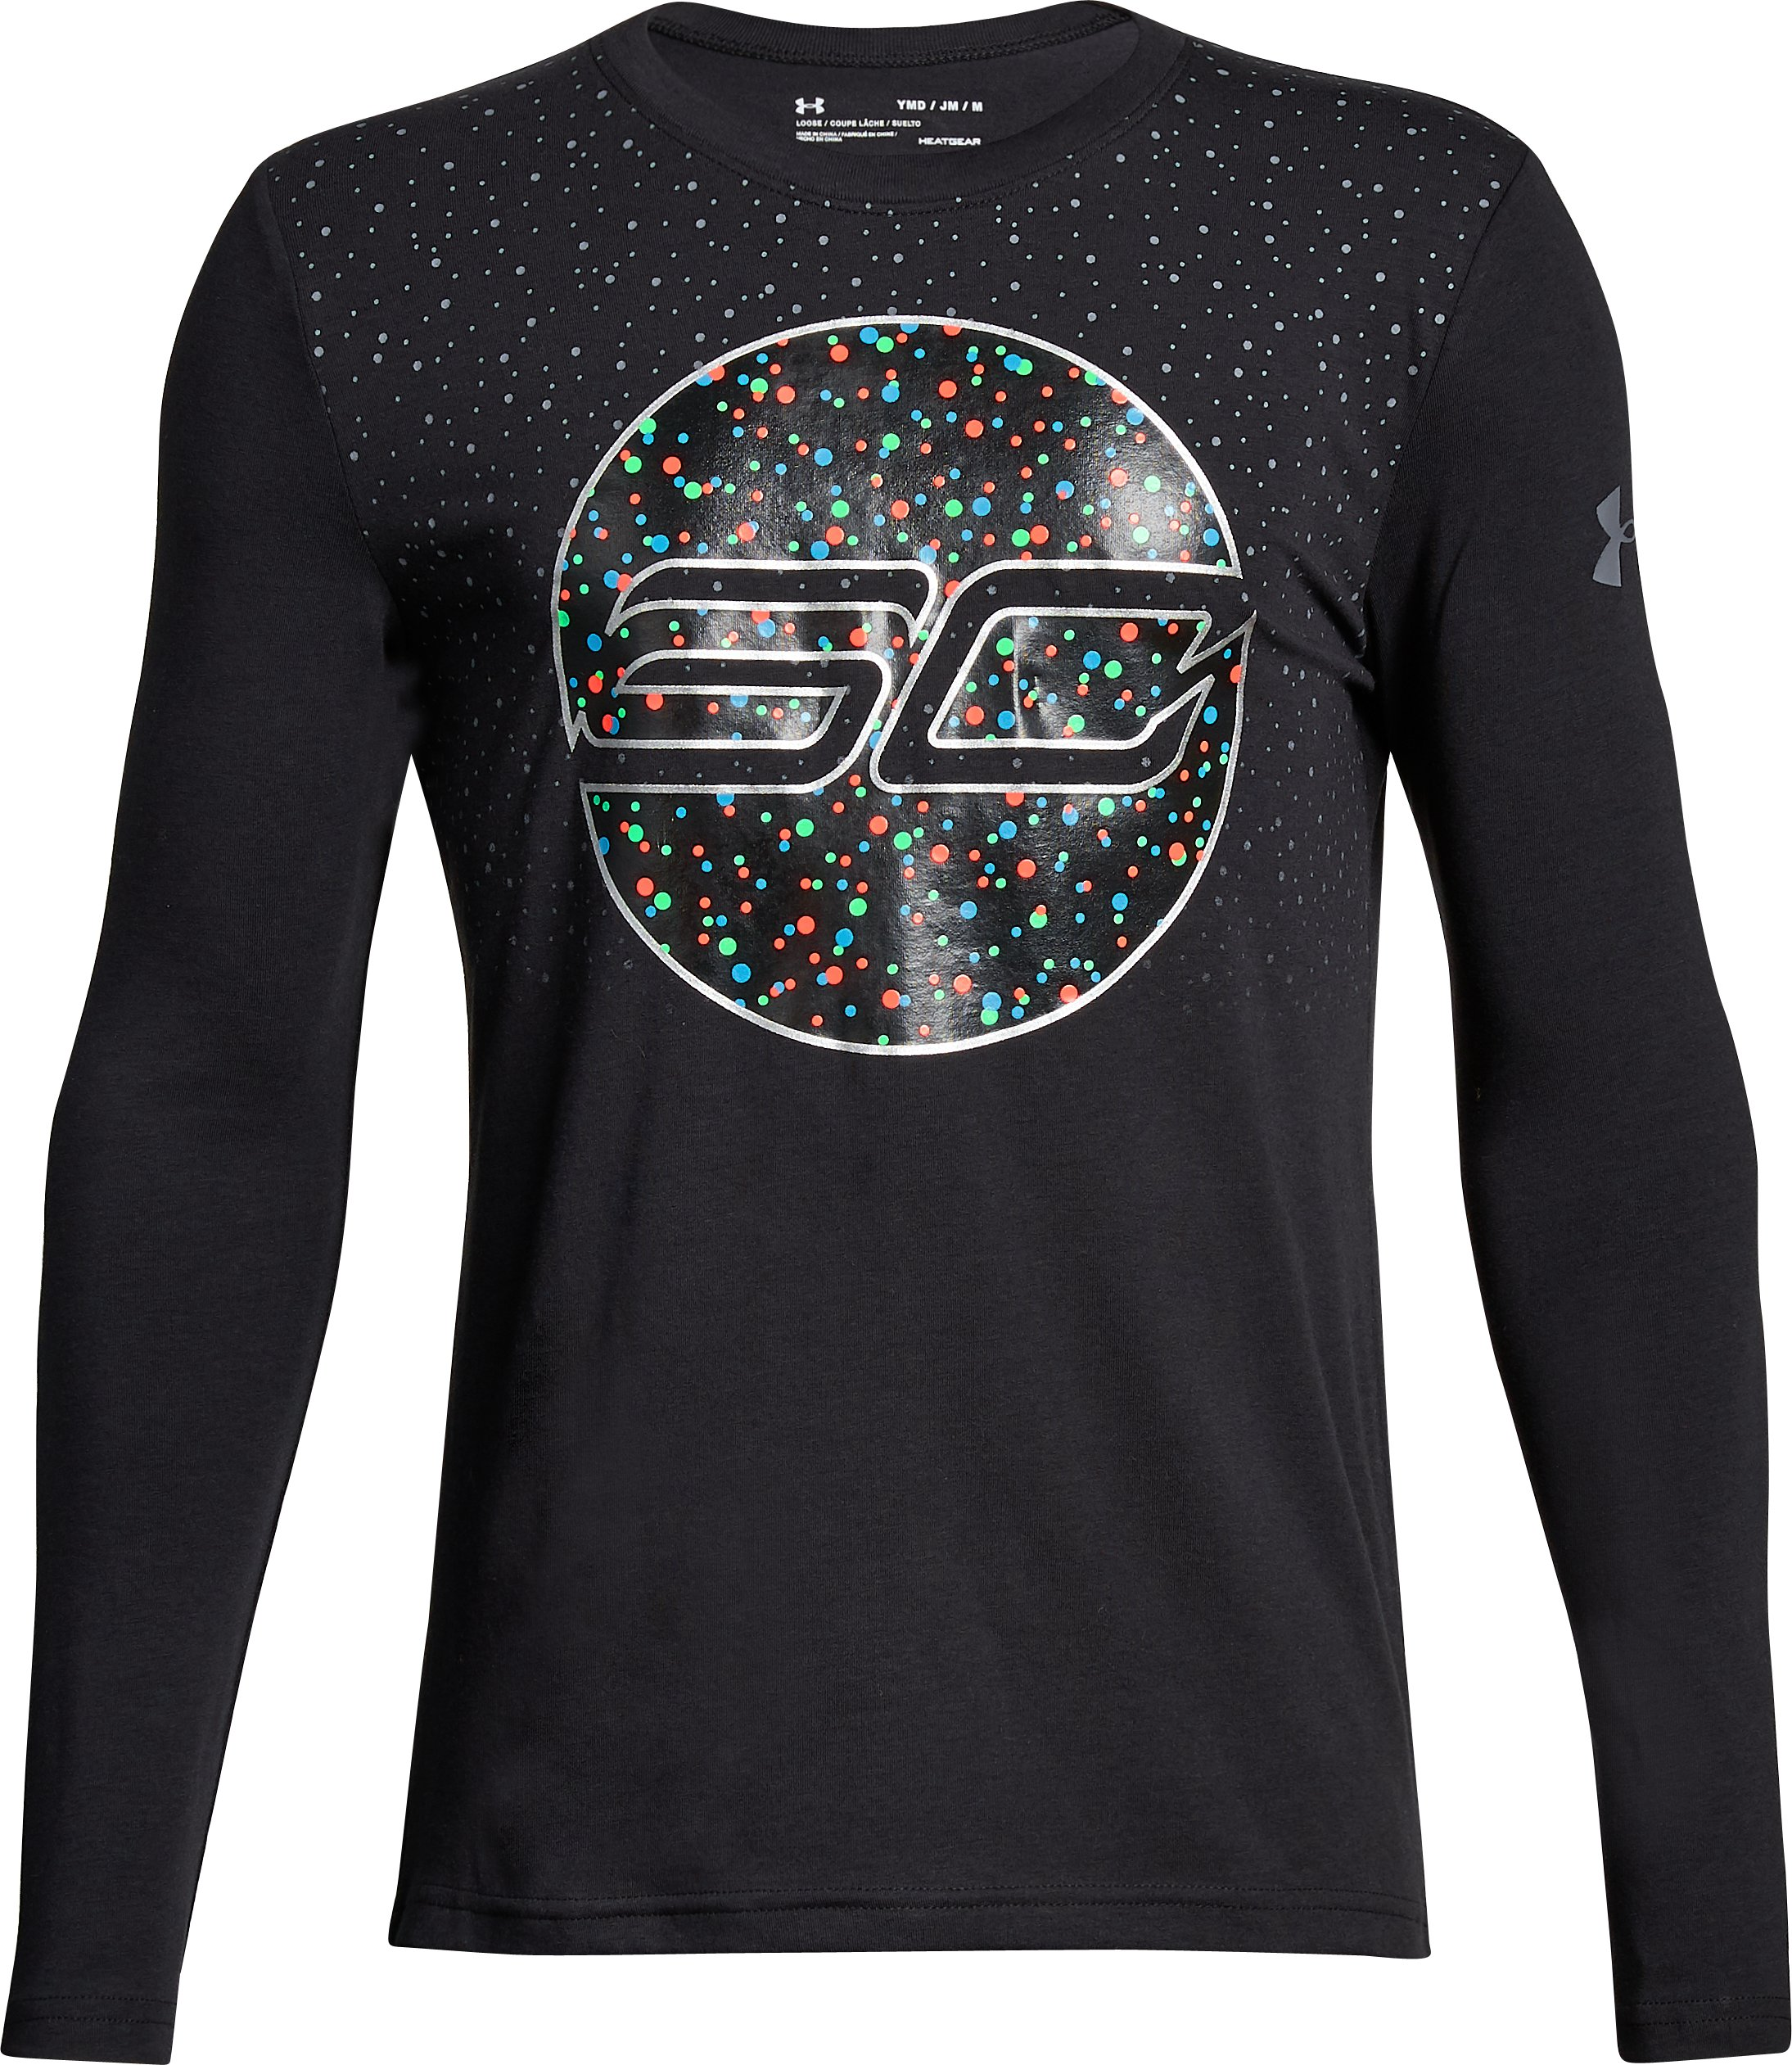 Boys' SC30 Holiday Lights Long Sleeve T-Shirt, Black , undefined